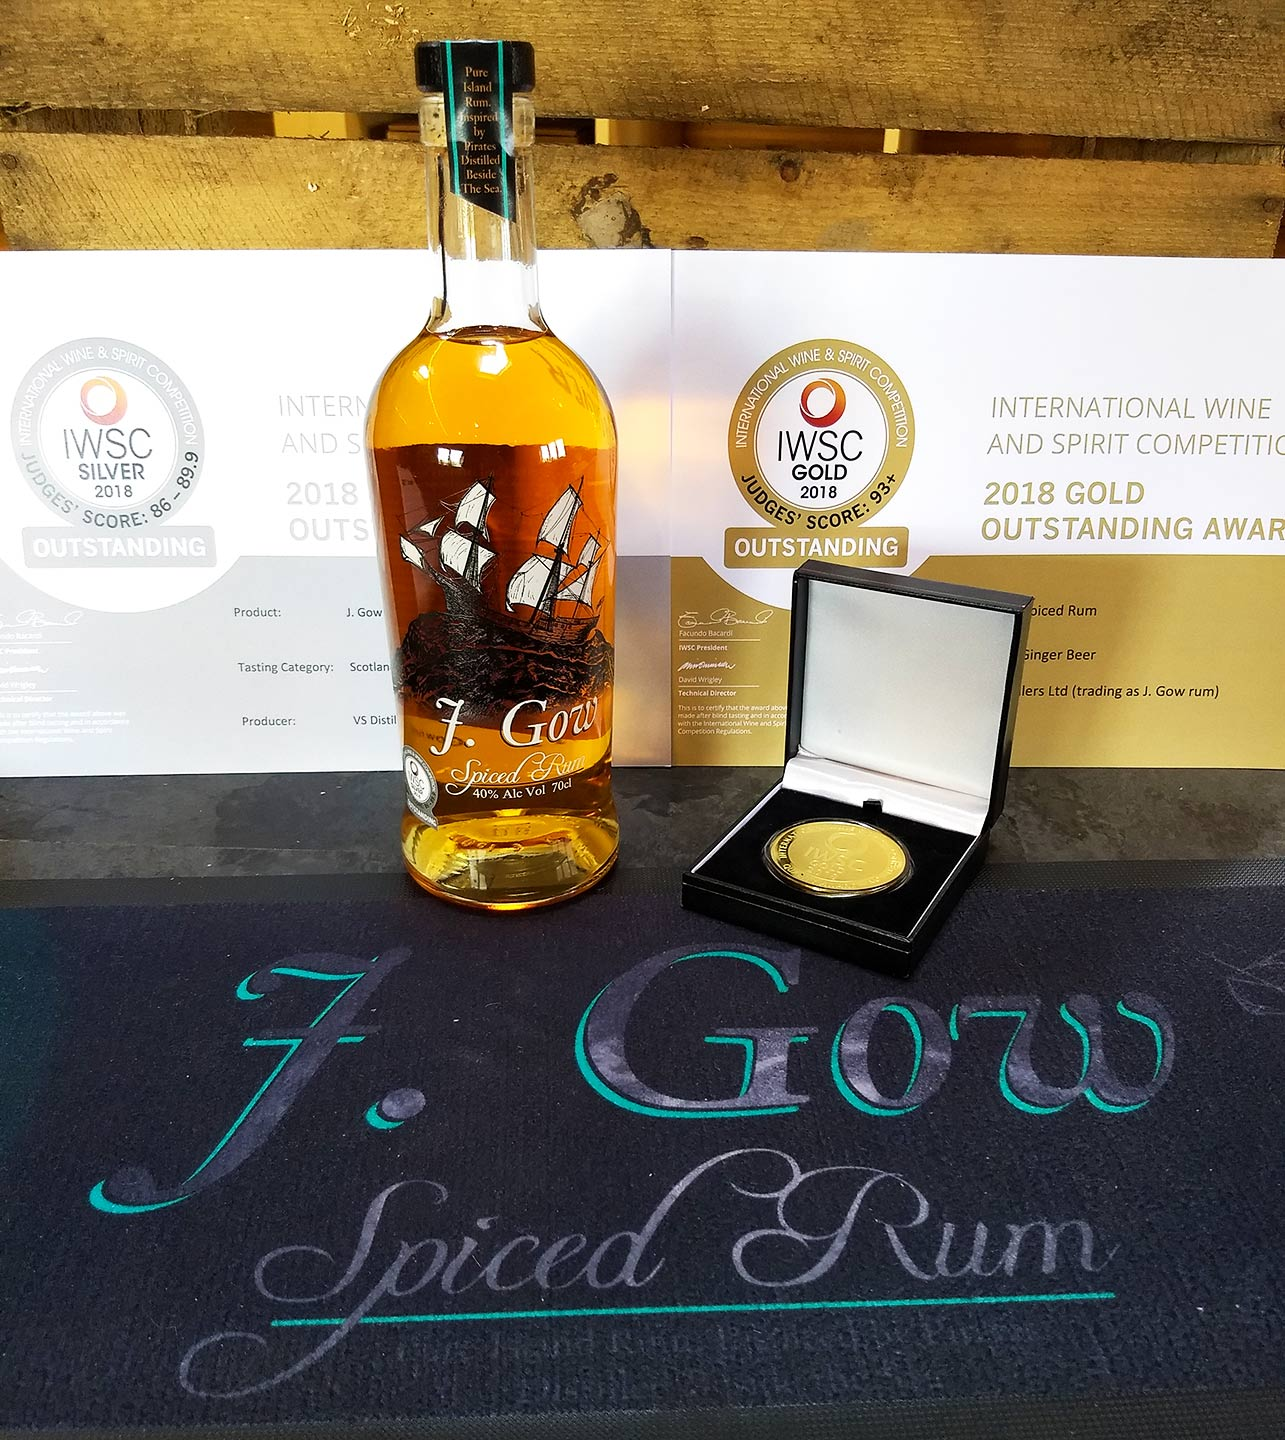 J Gow spiced rum gold outstanding medal rum and ginger beer